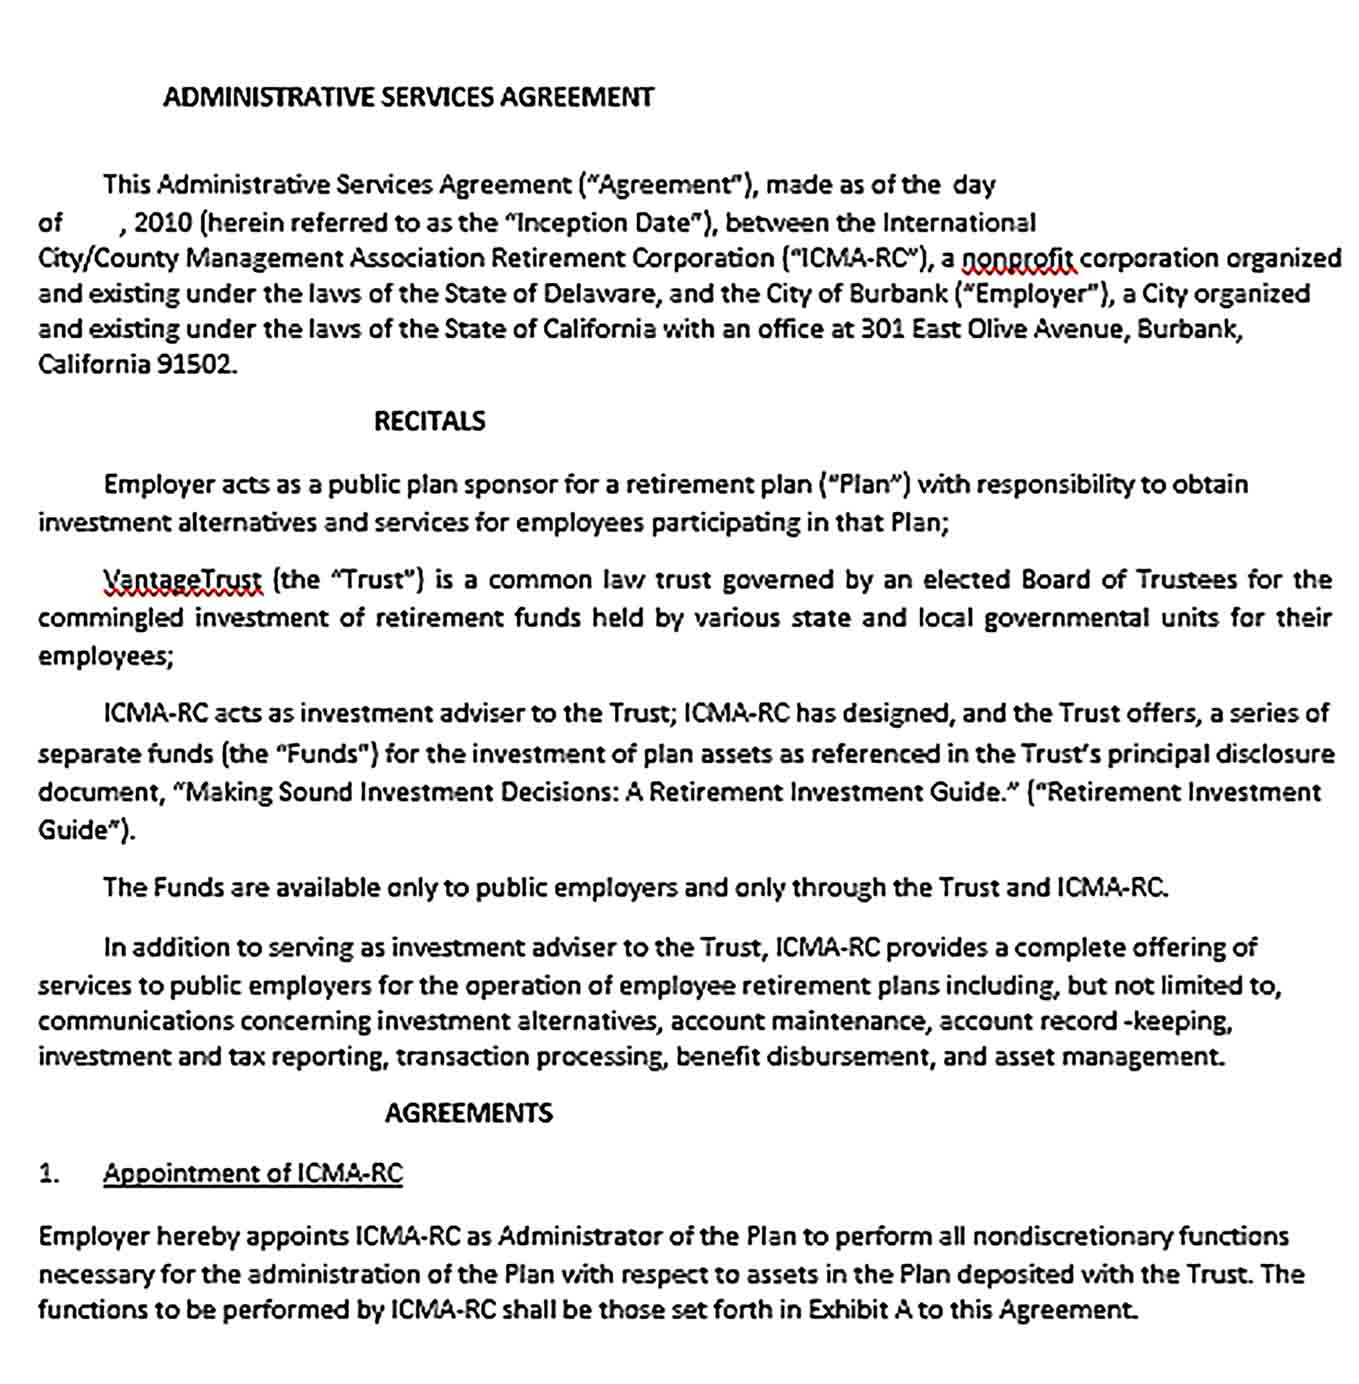 Sample Retirement Plan Administrative Services Agreement